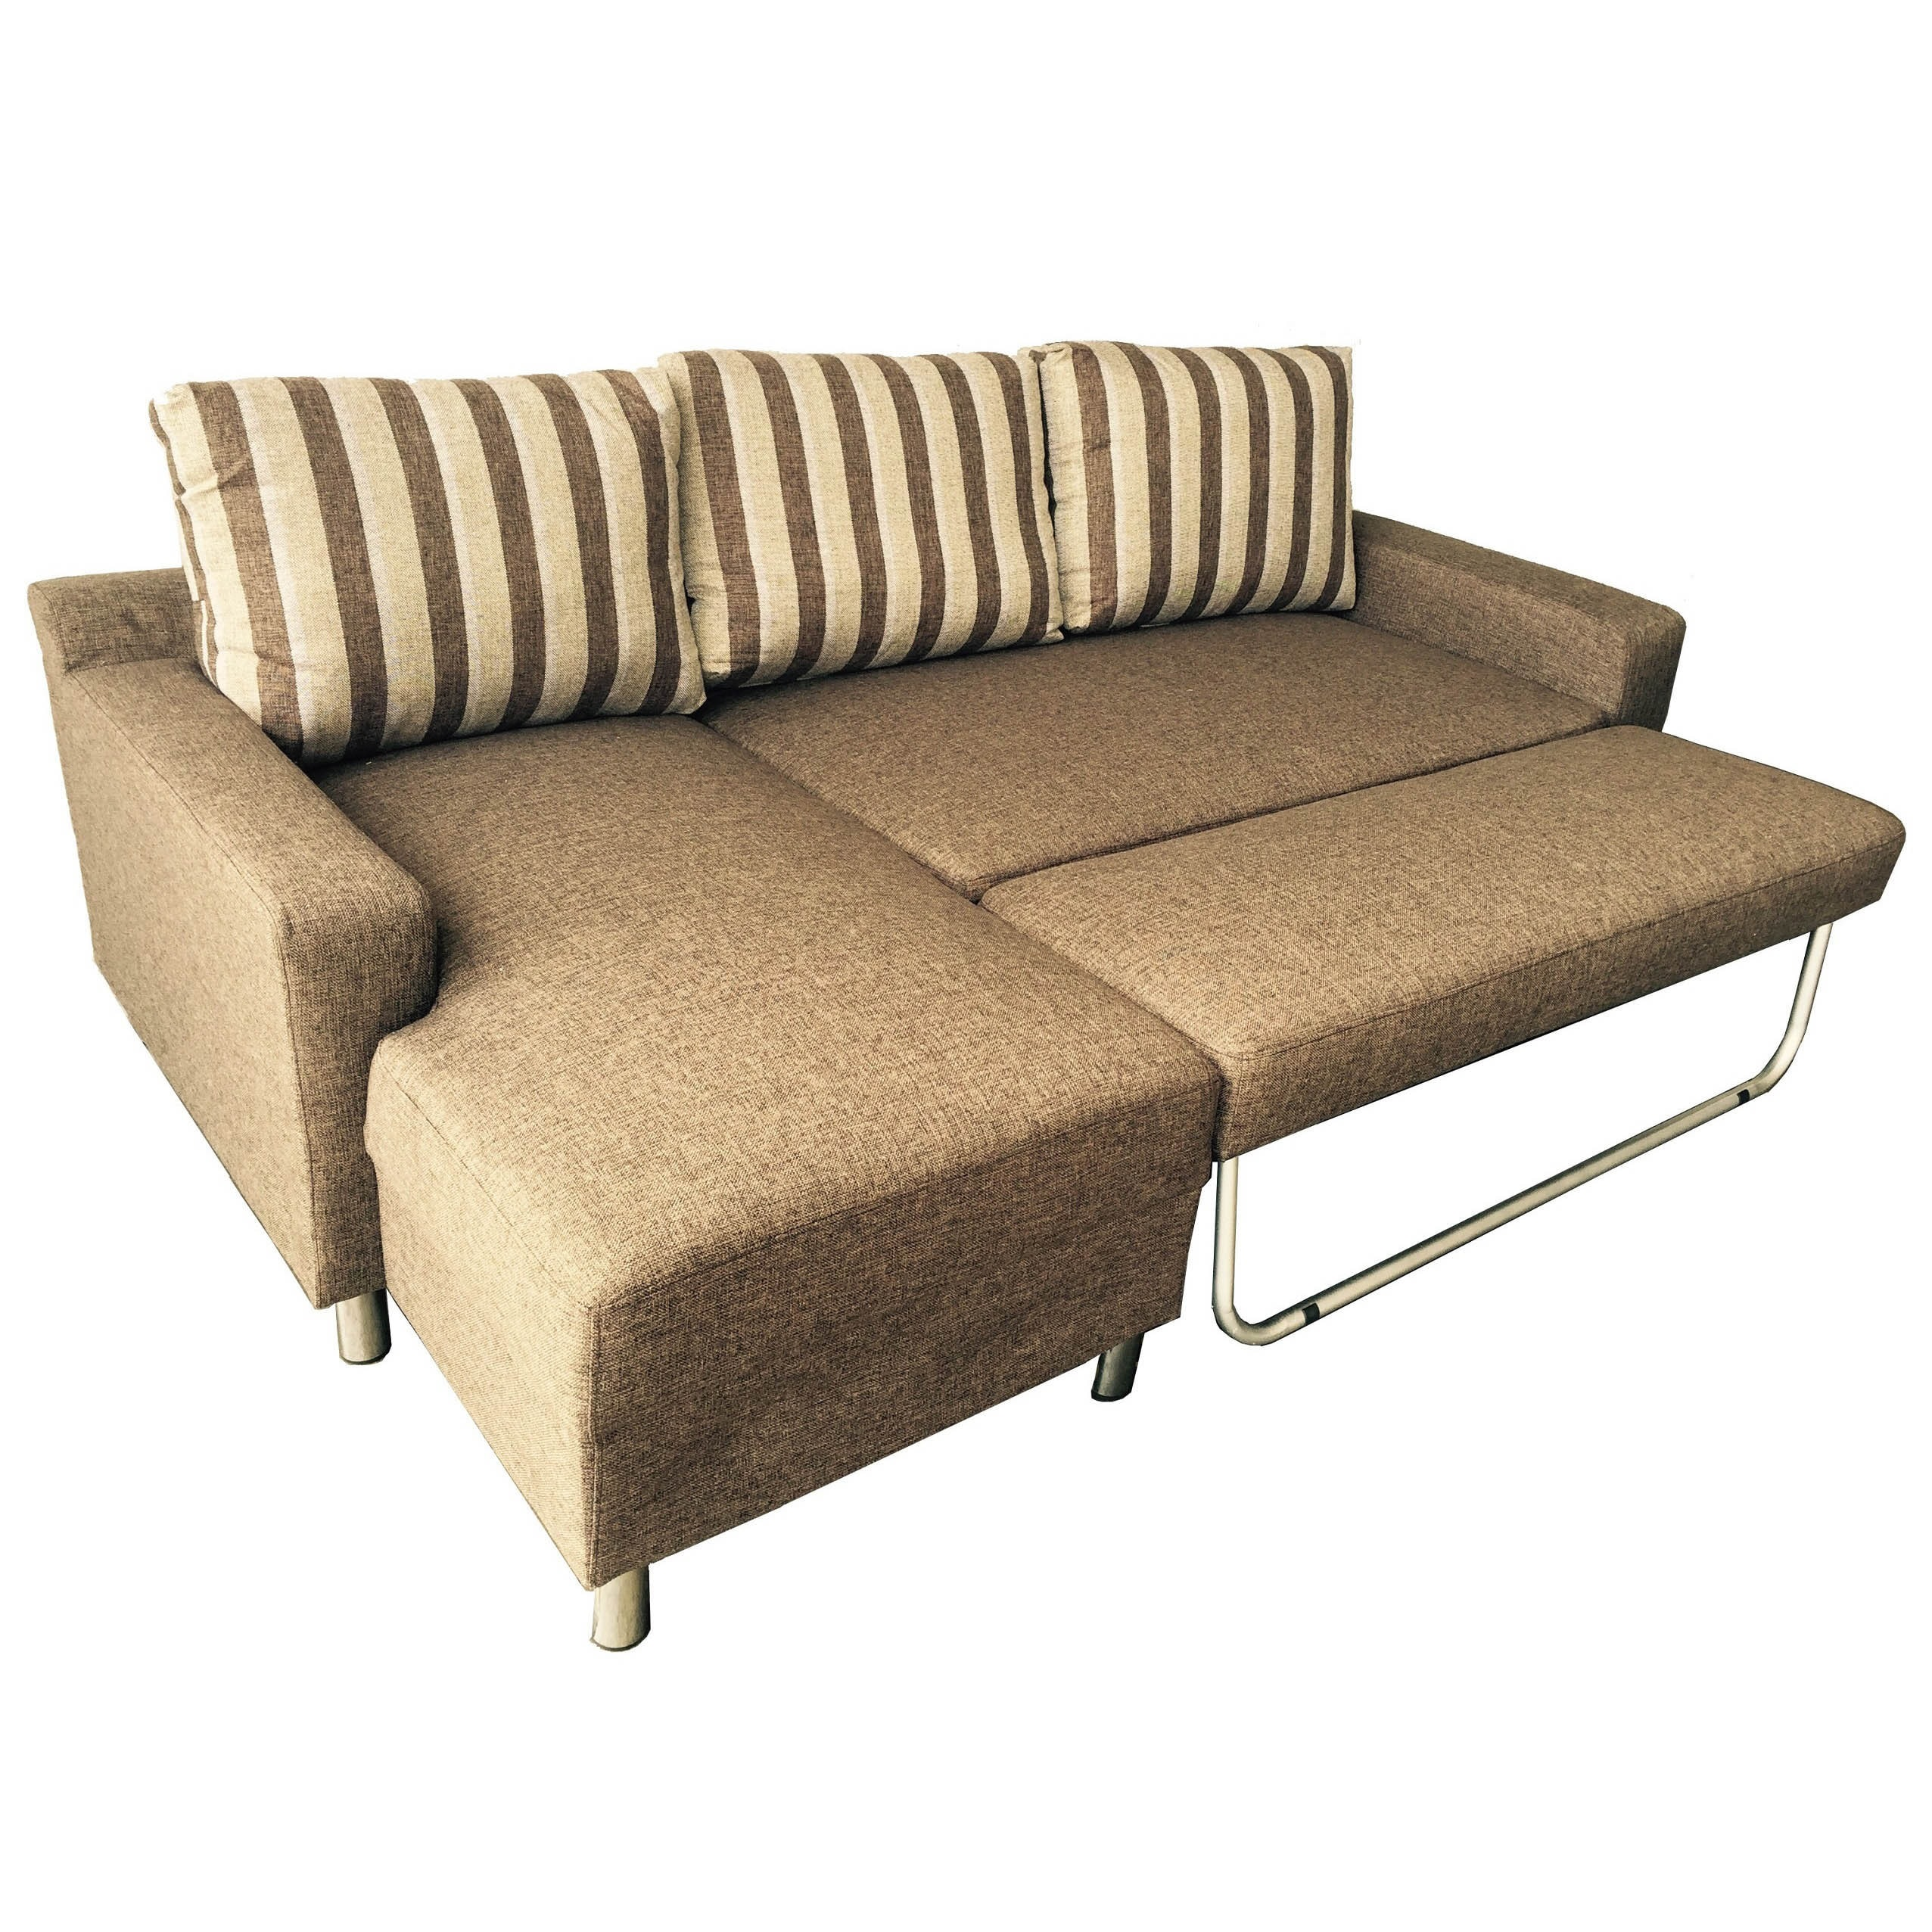 Kachy Fabric Convertible Sectional Sofa Bed